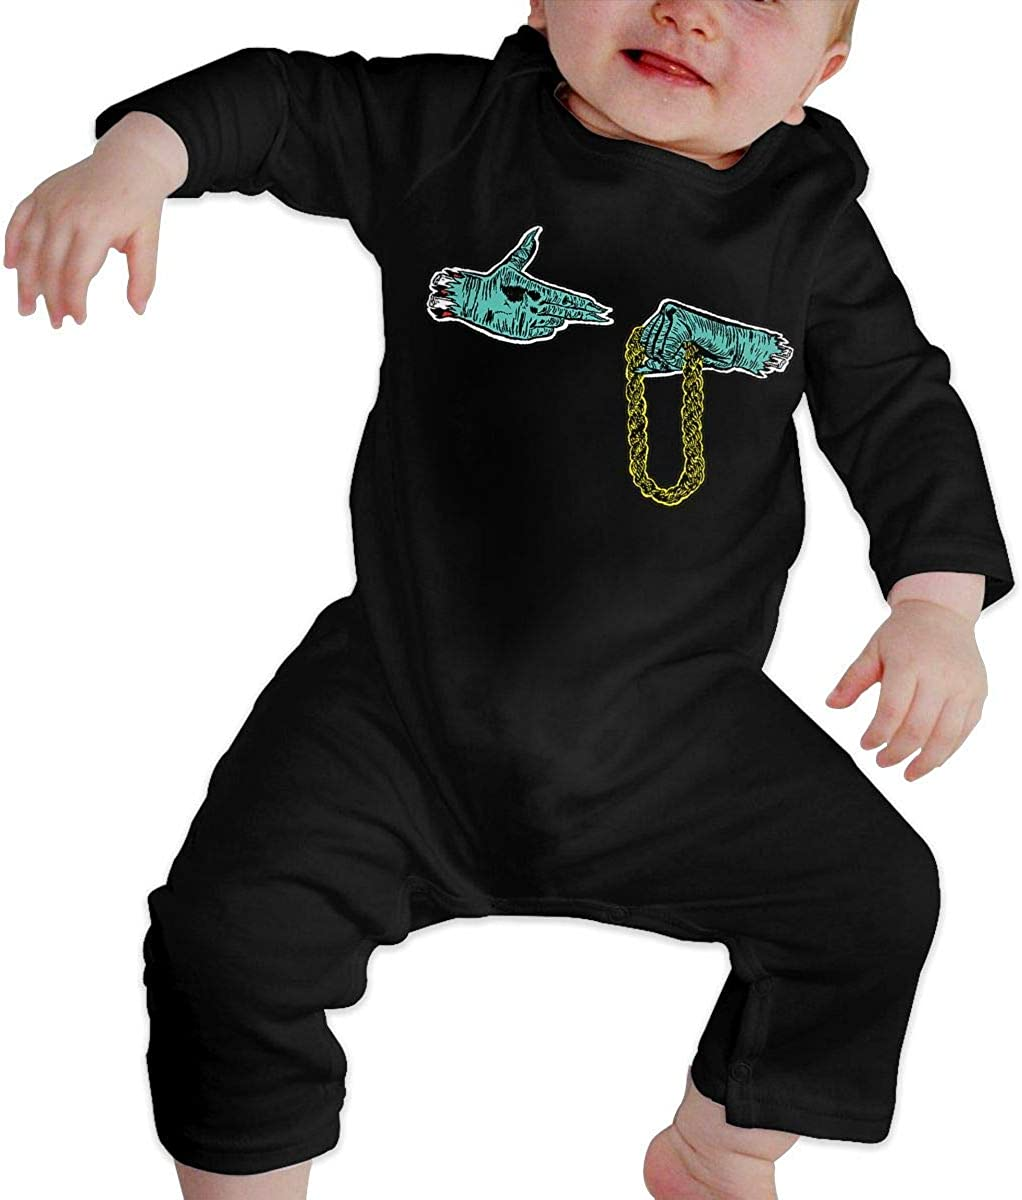 Run The Jewels Cute Babys Romper Long Sleeve